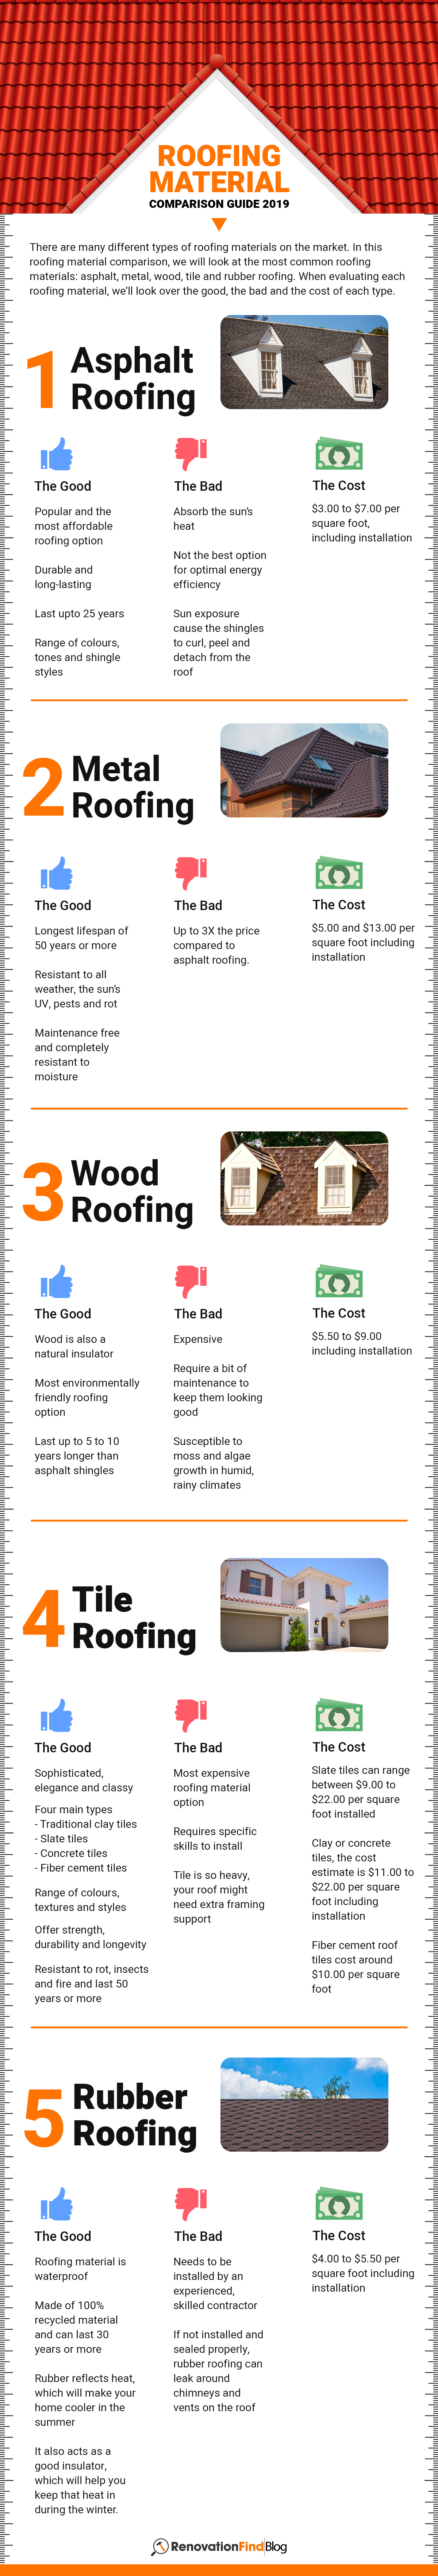 Roofing Material Comparison Guide 2019 In 2020 Types Of Roofing Materials Roofing Materials Roofing